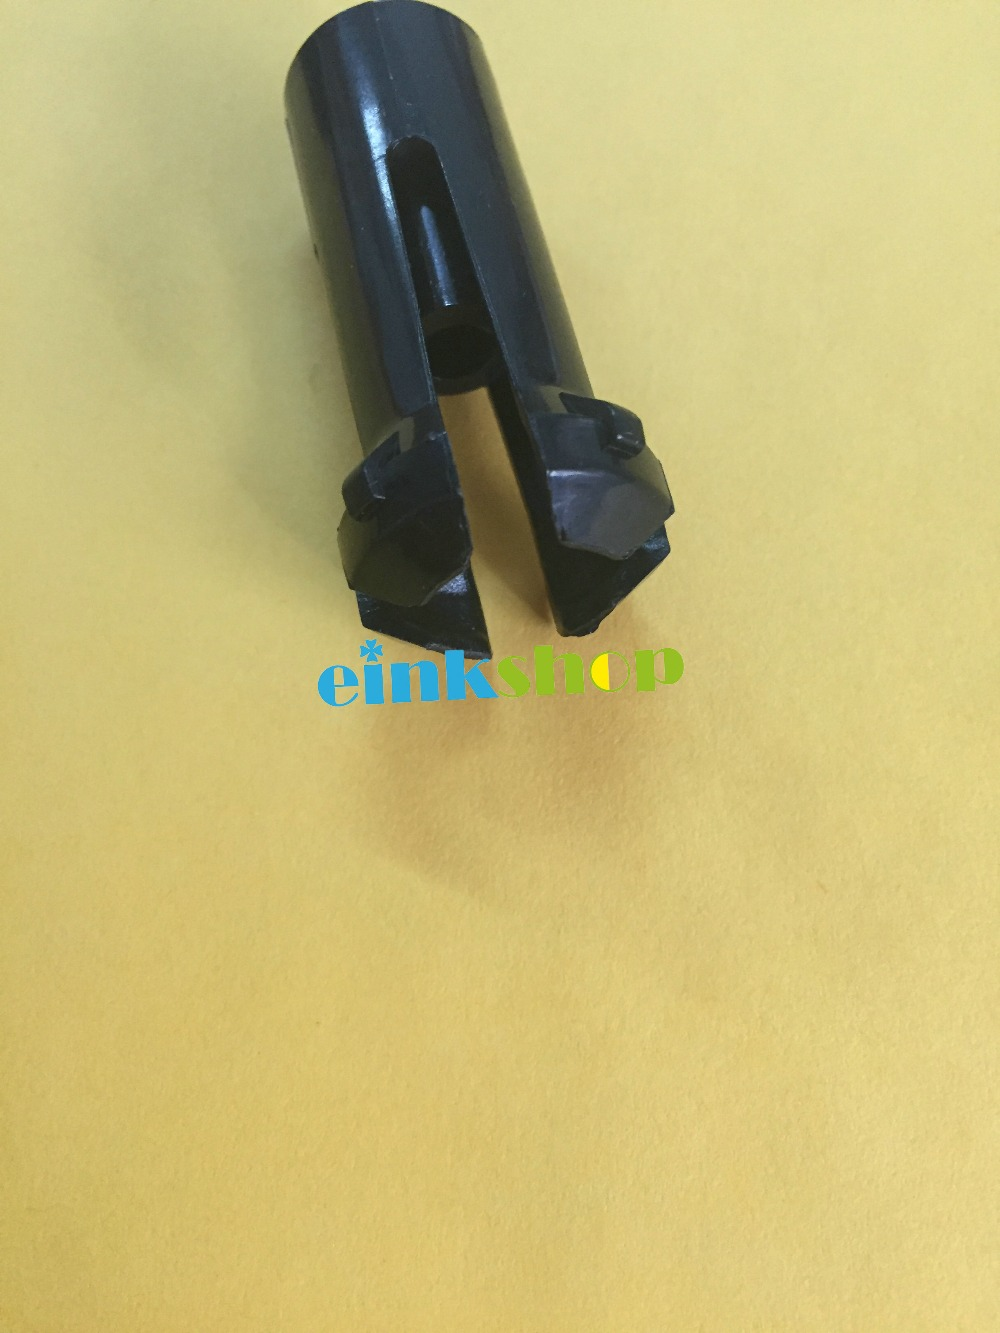 2pcs A293 3230 Toner Bottle Cluck For Ricoh 1075 7500 2075 1055 1060 2060 MP8000 8001 6500 7001 6001 9001 Printer in Printer Parts from Computer Office